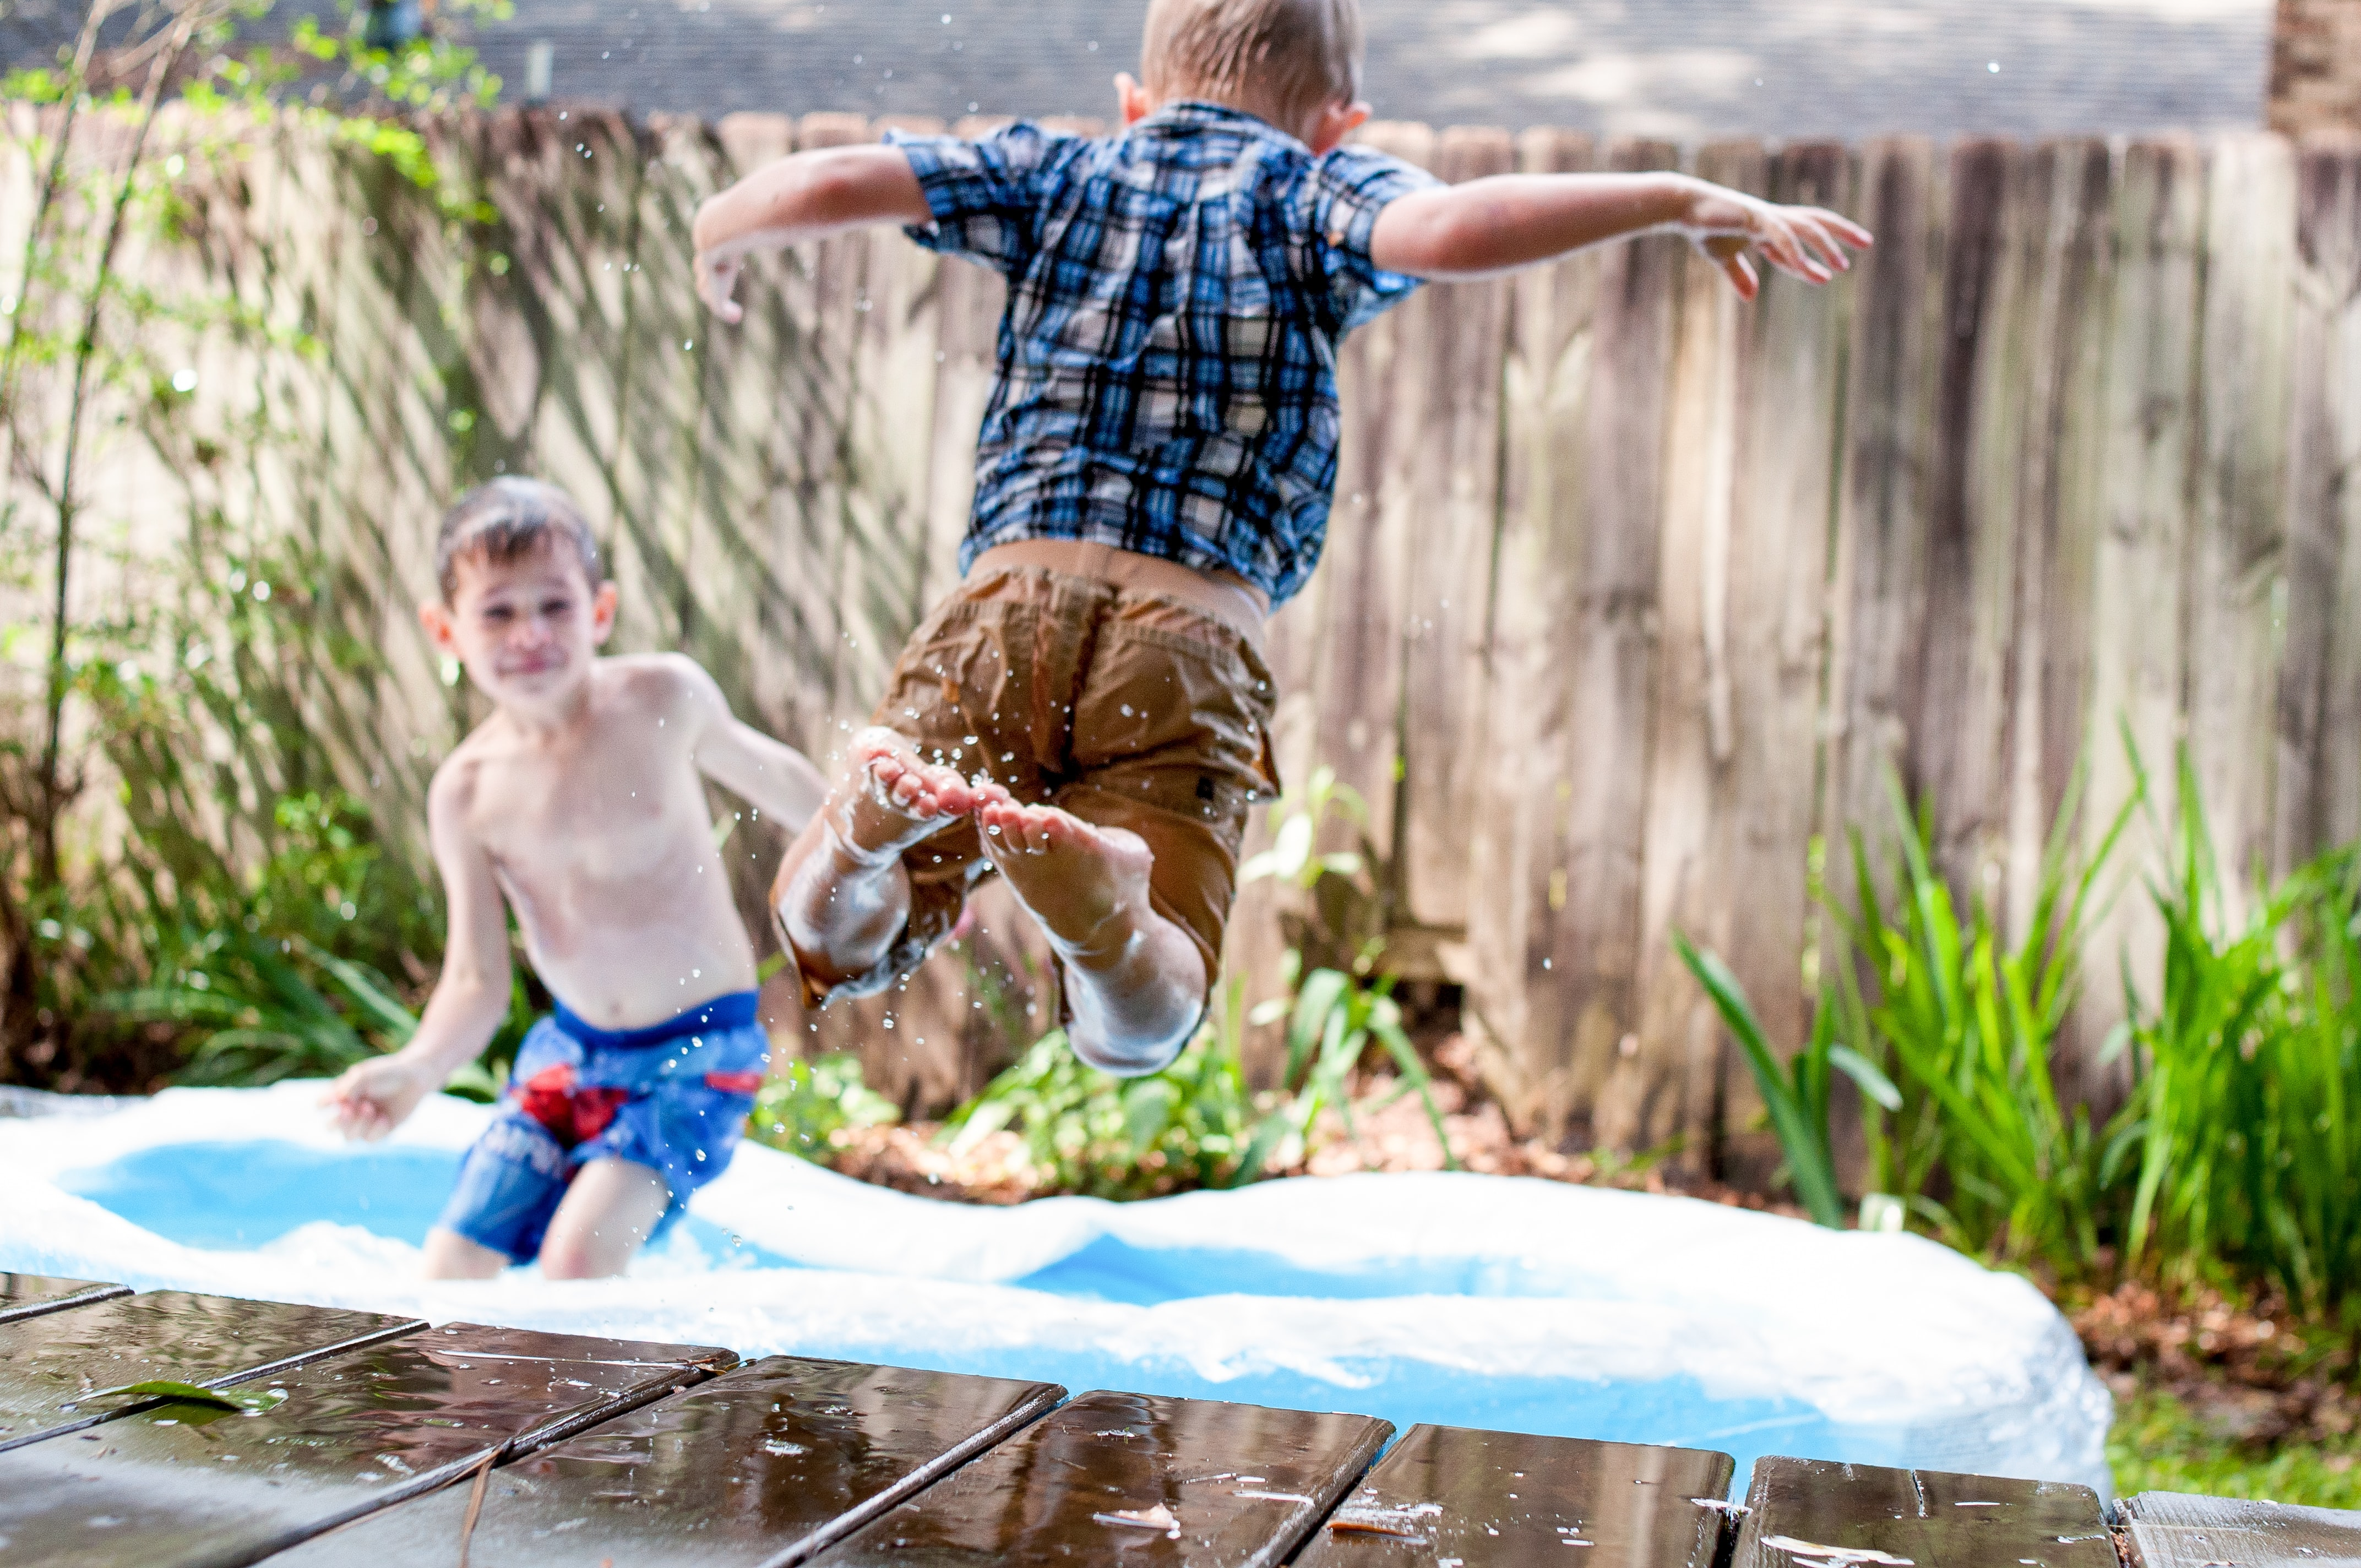 two boys playing in inflatable pool during daytime